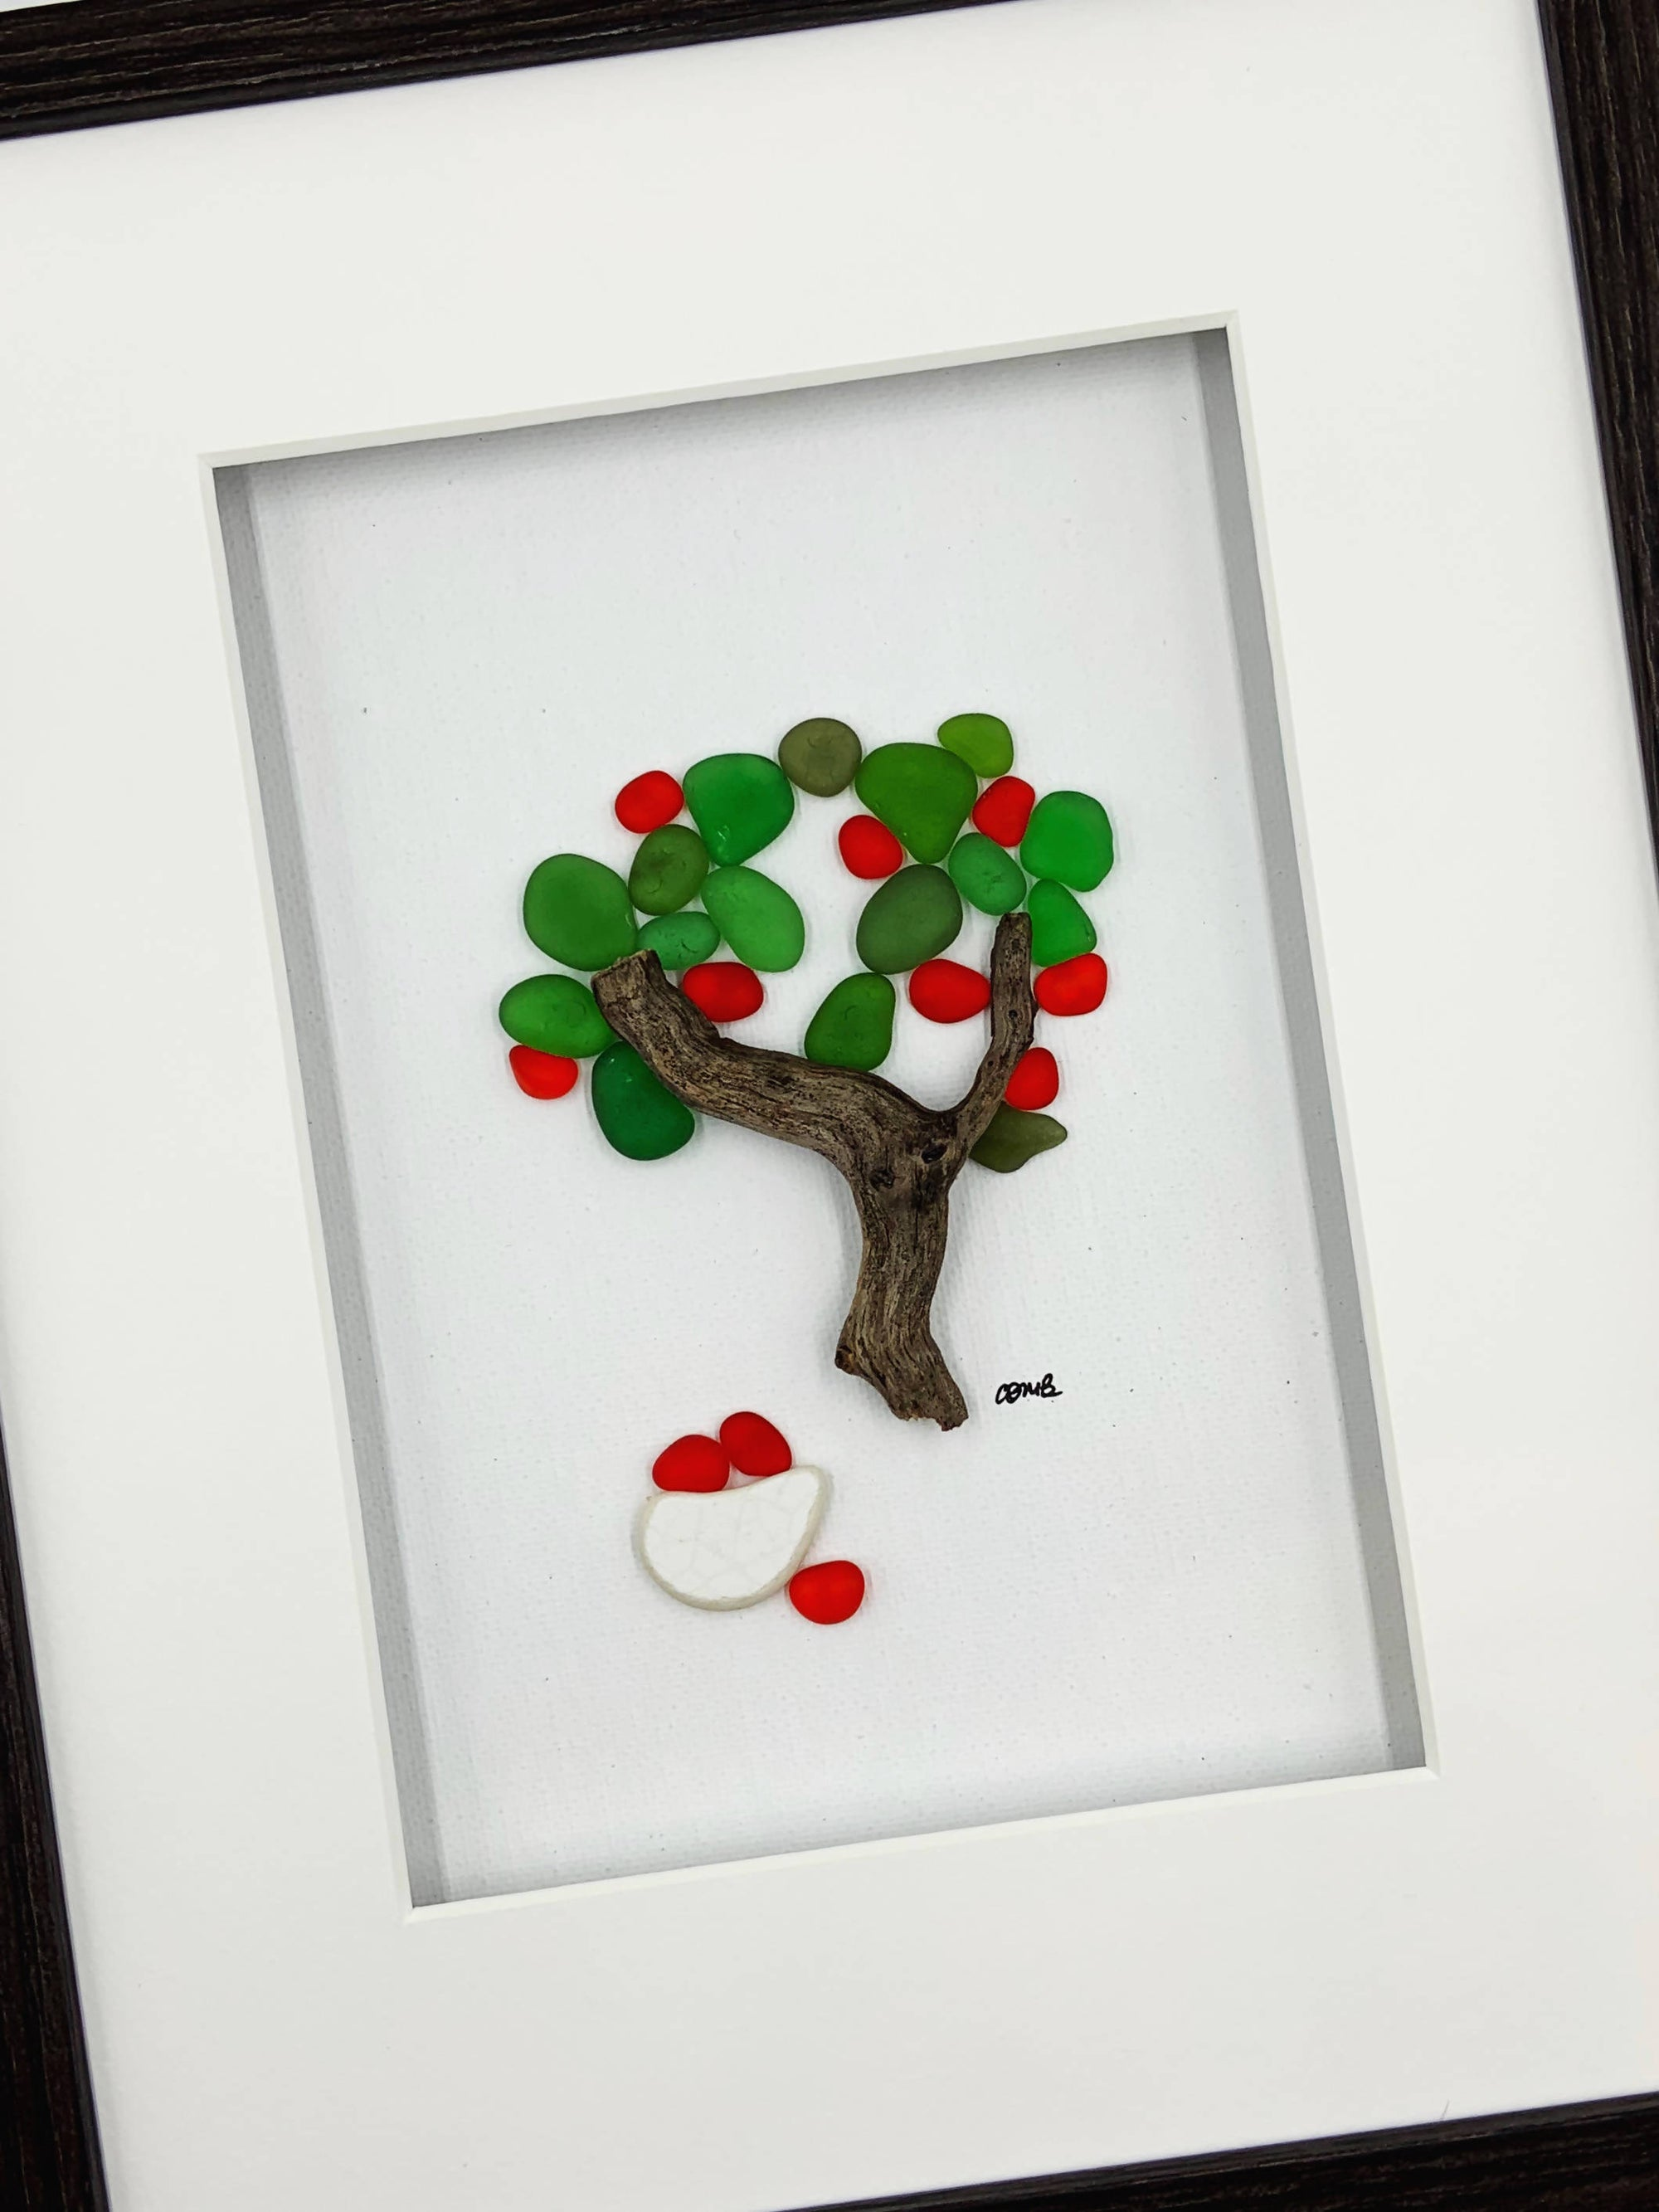 Pebble art / Sea glass art, 8 by 10, Apple tree